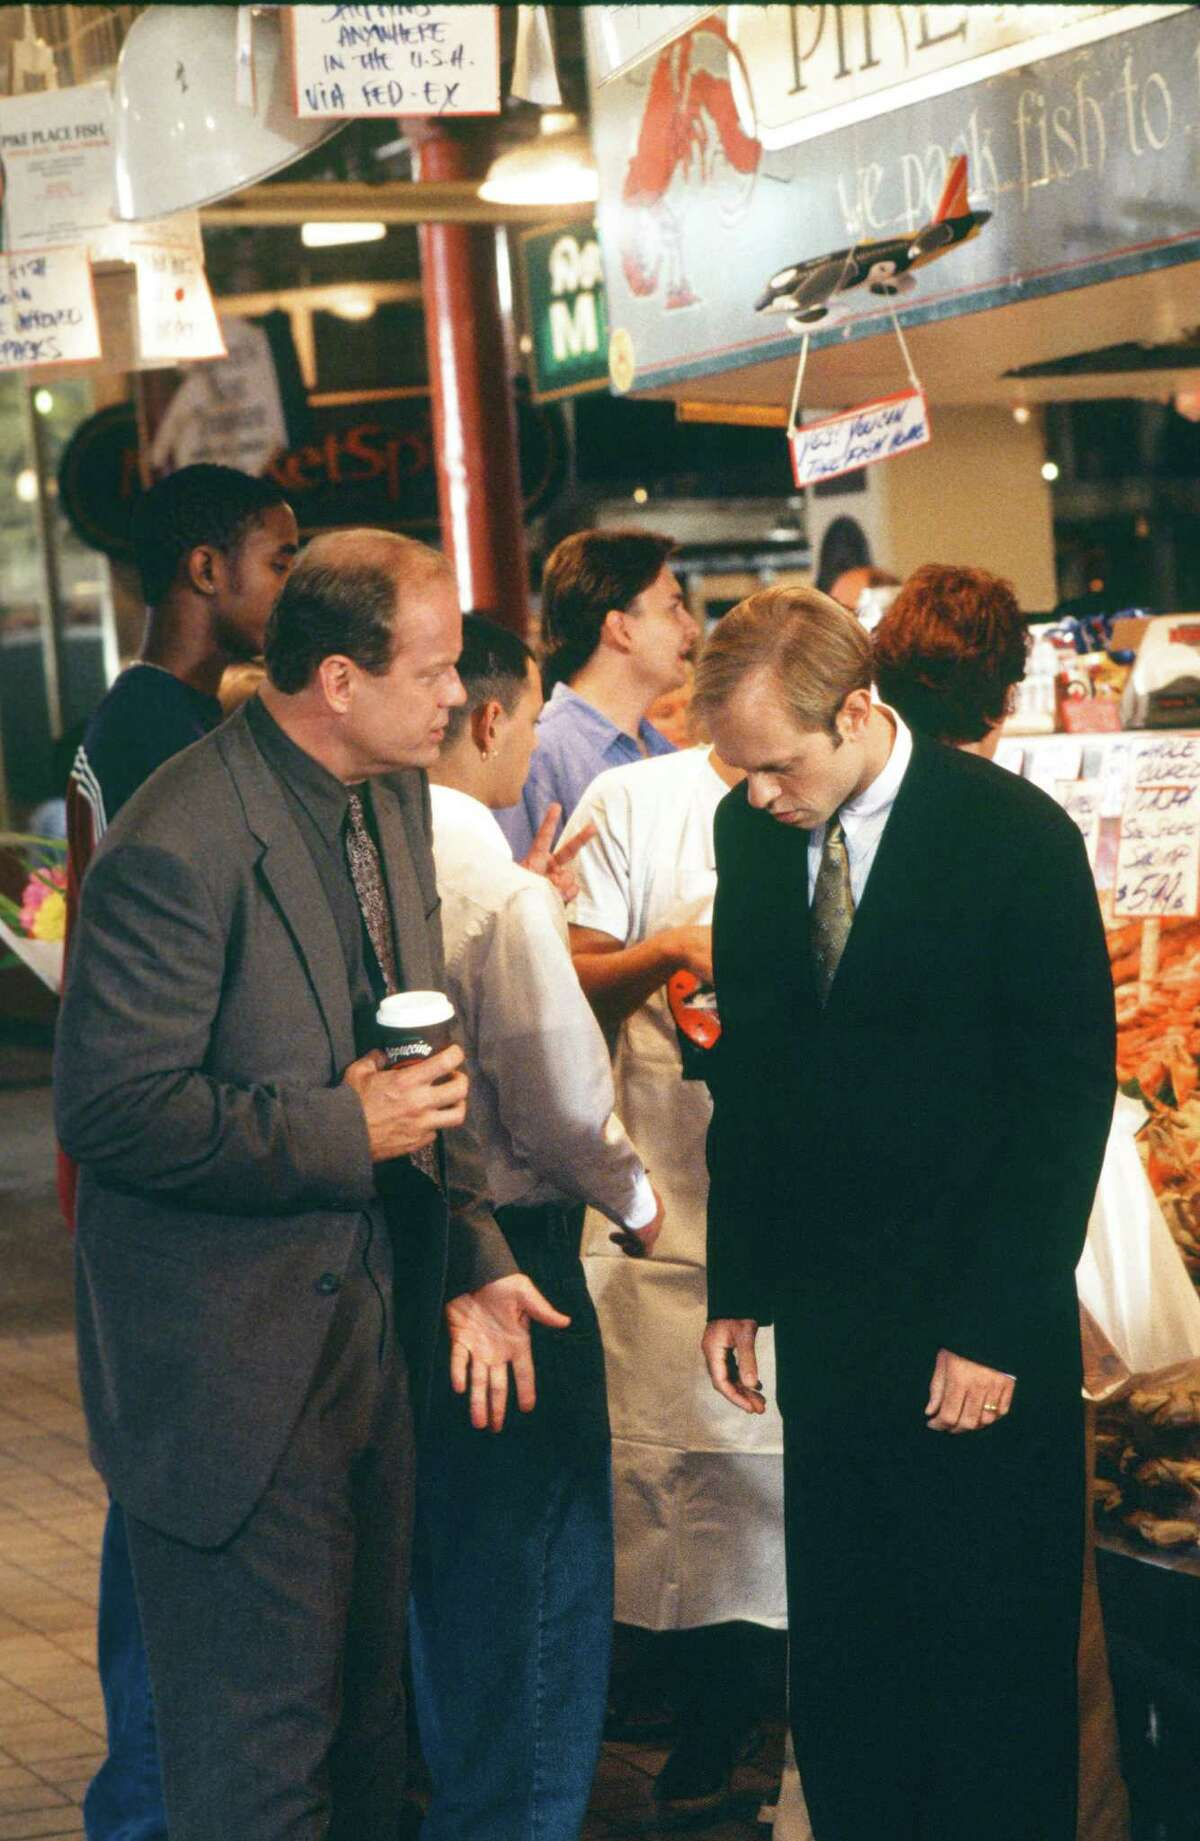 Kelsey Grammer as Doctor Frasier Crane, David Hyde Pierce as Doctor Niles Crane.